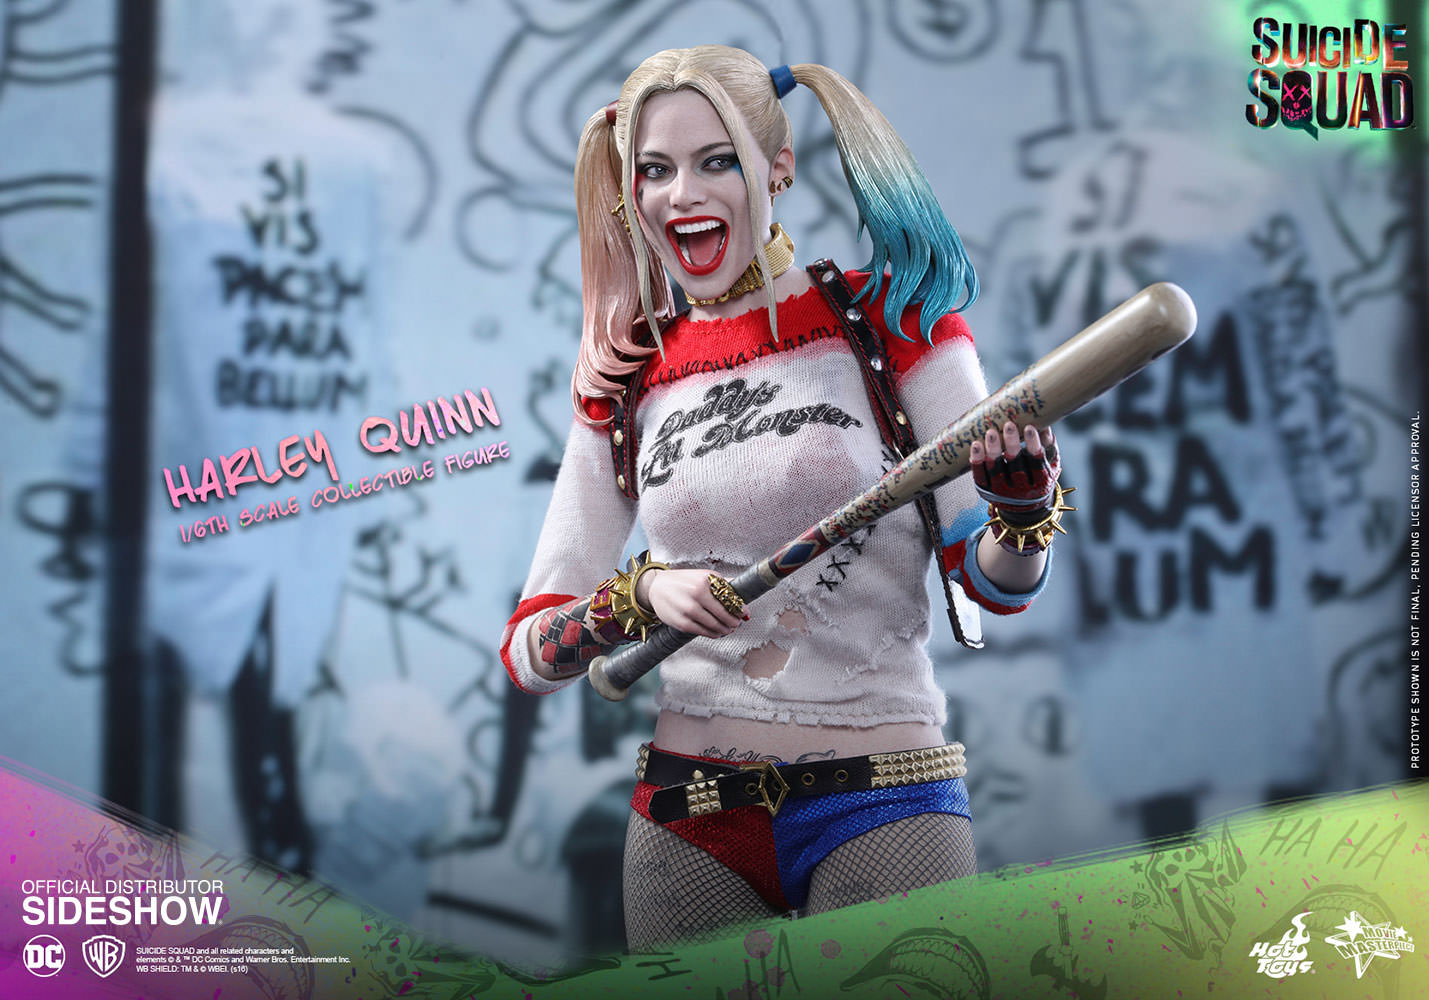 Hot Toys Suicide Squad Harley Quinn 1 6 Figure Toyslife